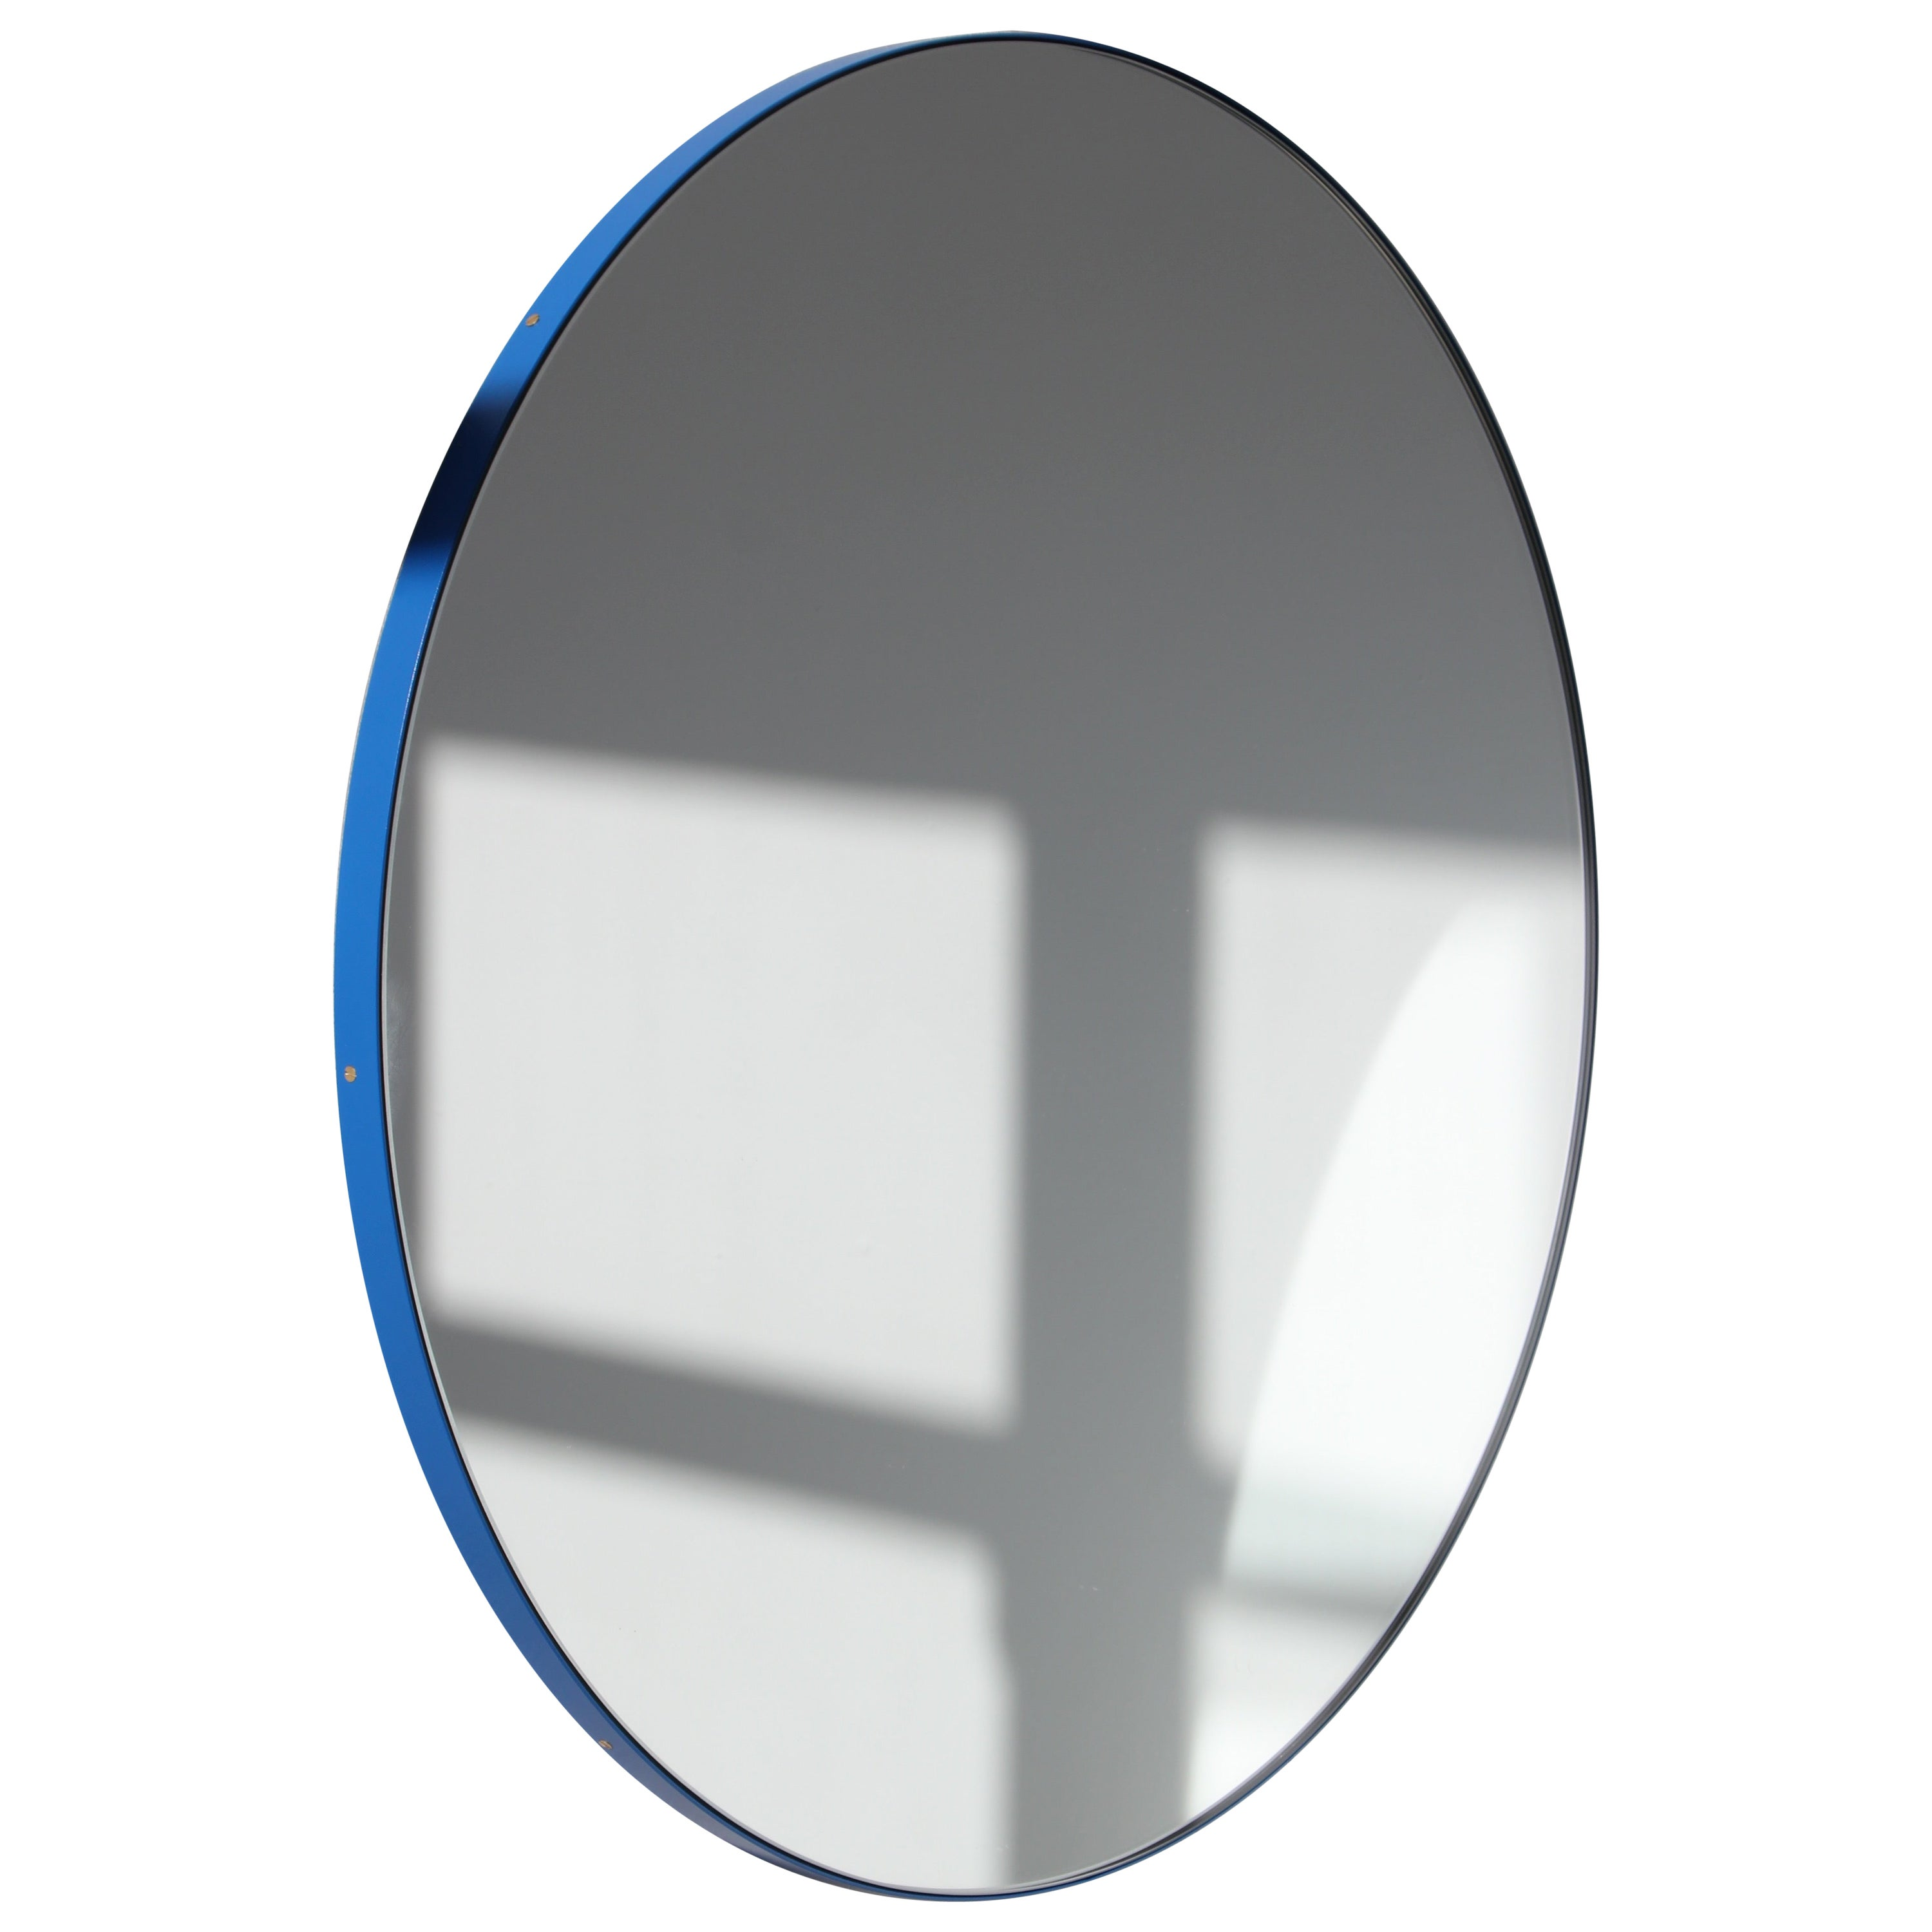 Orbis™ Round Modern Customizable Mirror with Blue Frame - Large